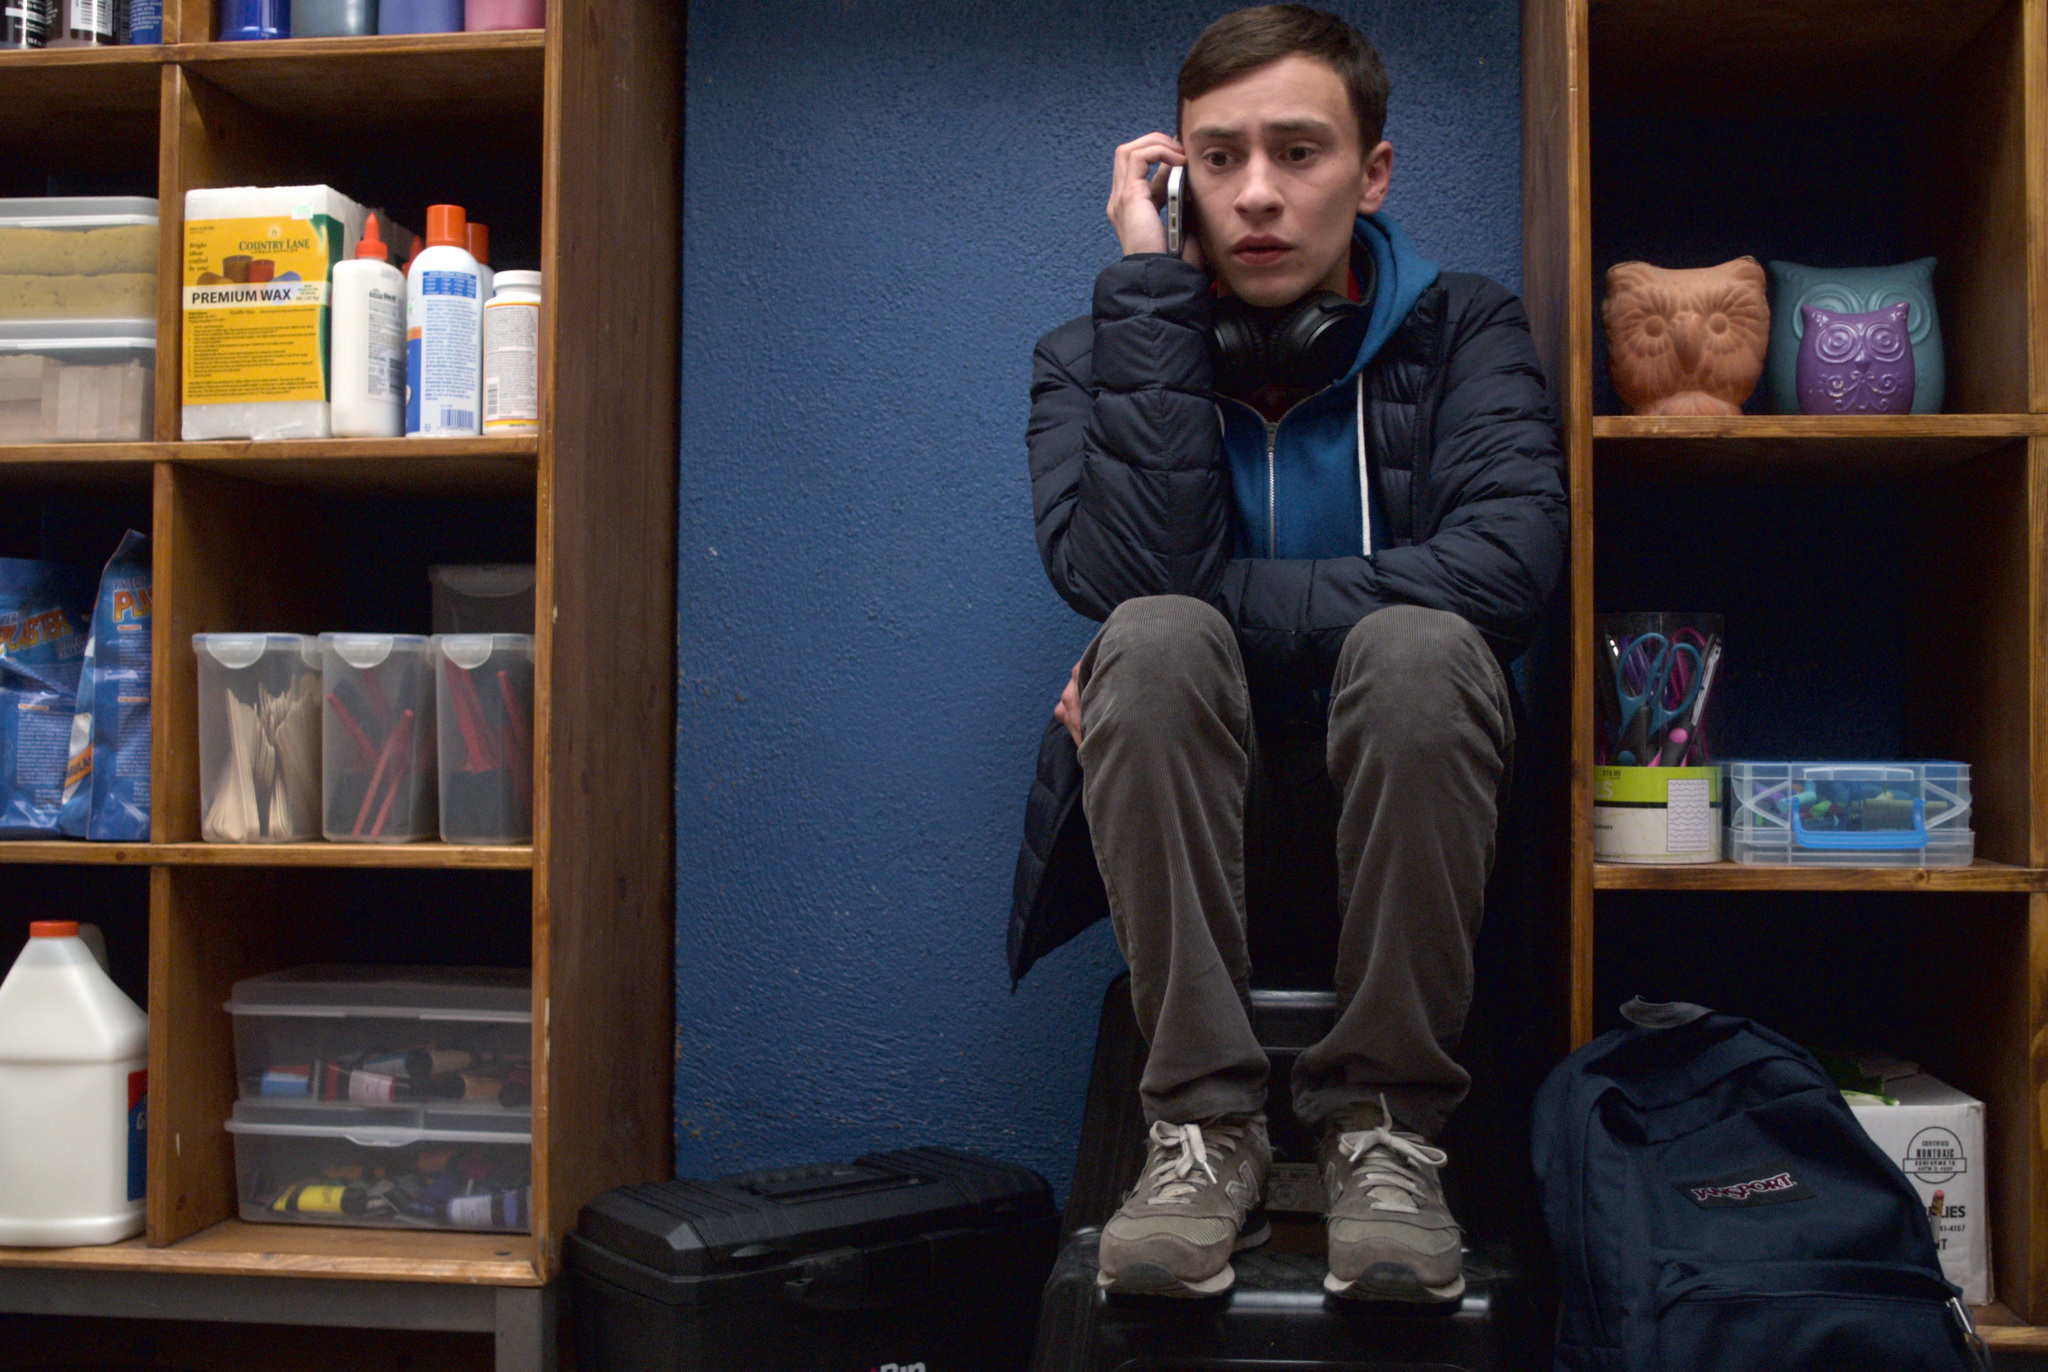 Keir Gilchrist in Atypical (2017)